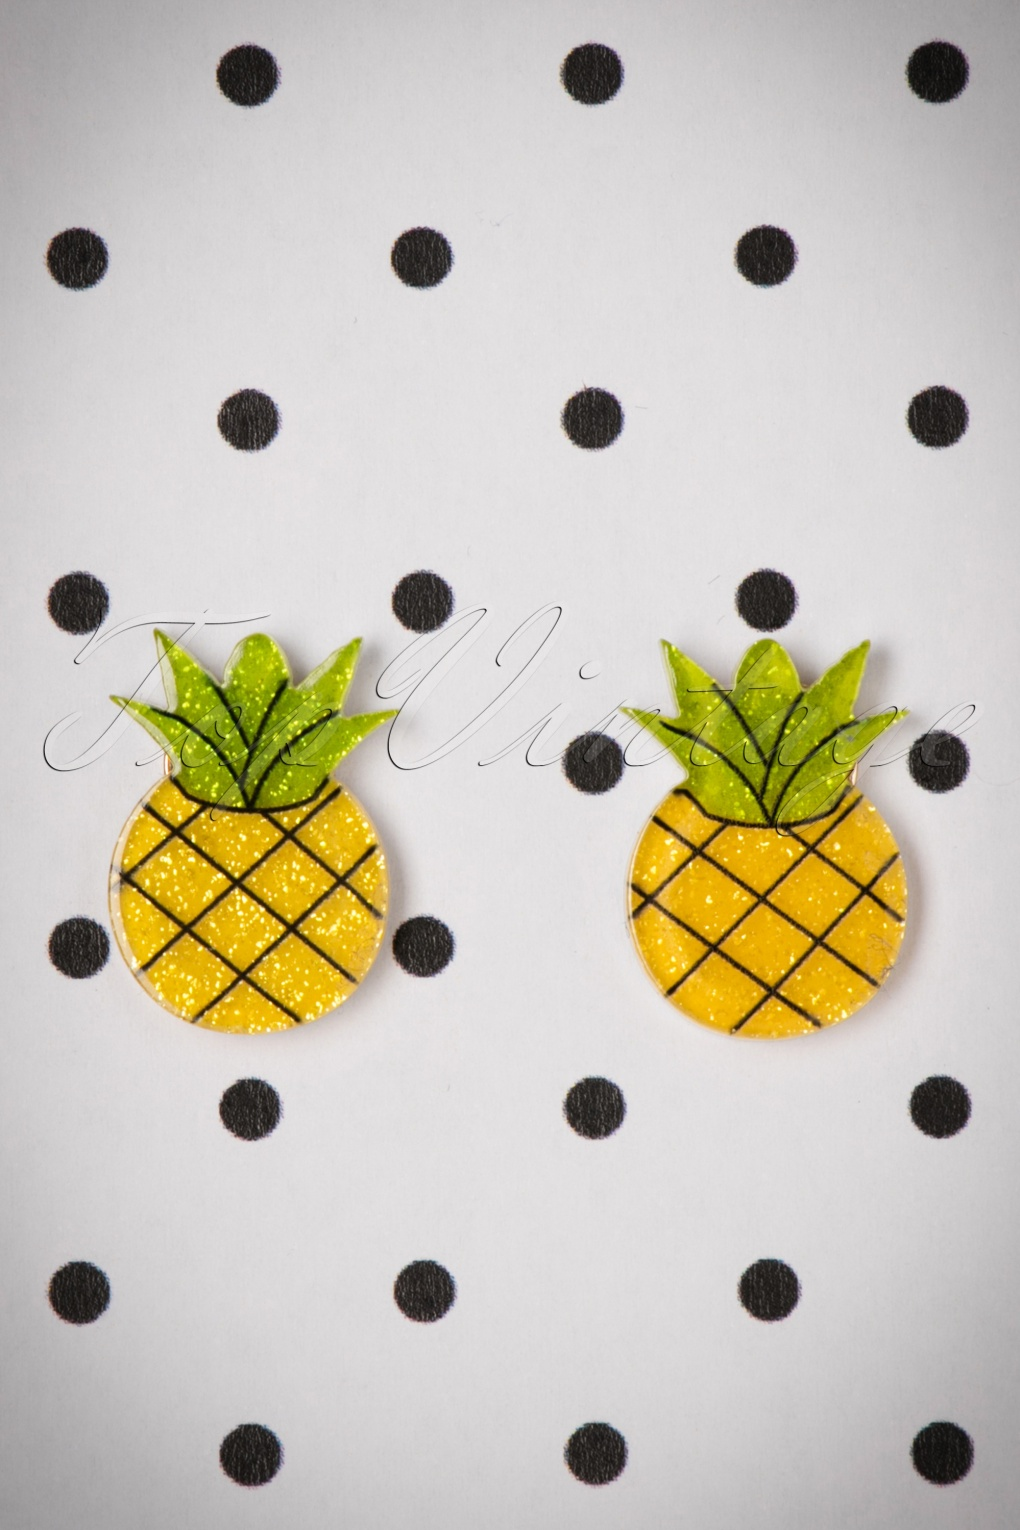 Vintage Style Jewelry, Retro Jewelry 60s Pineapple Stud Earrings in Yellow £8.84 AT vintagedancer.com